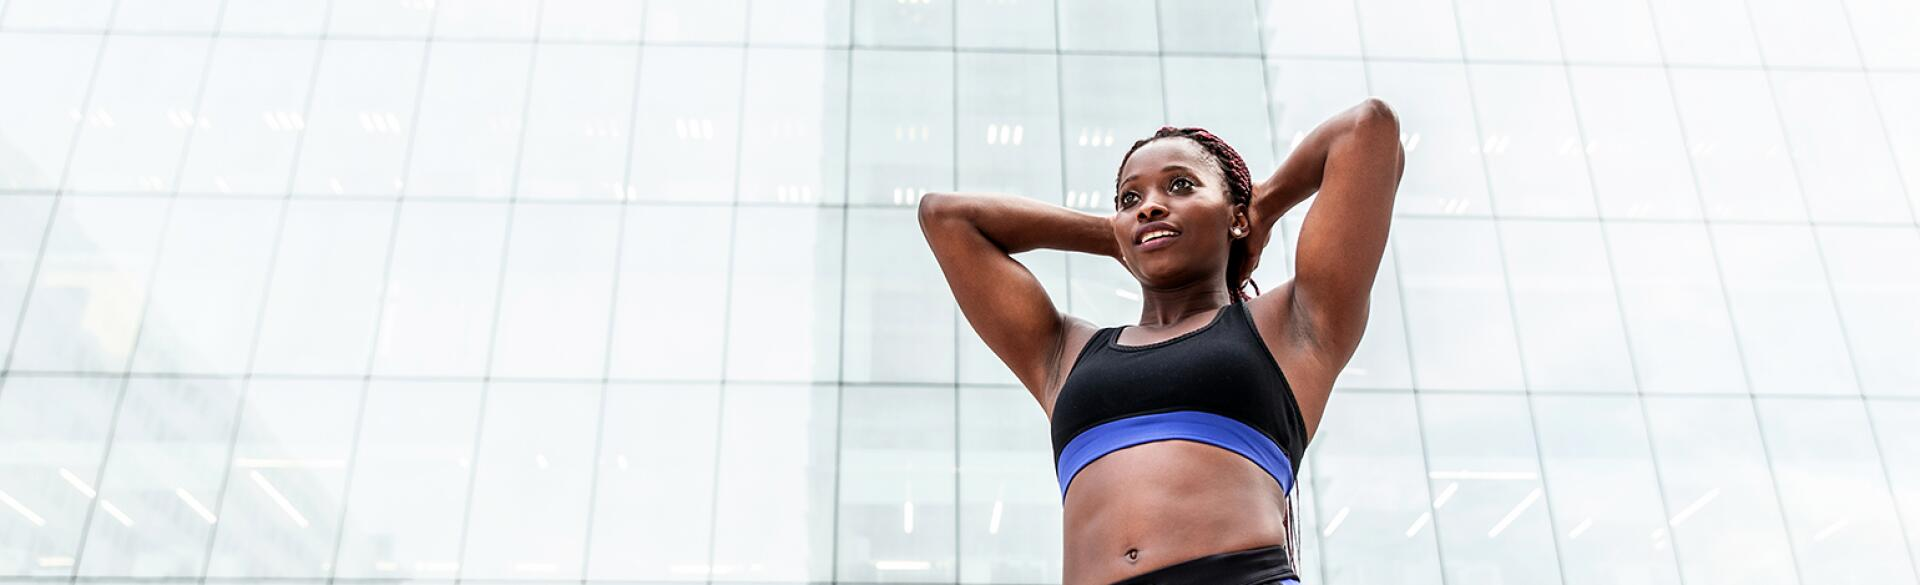 A photo of a woman in fitness gear, posing to show off her curves.